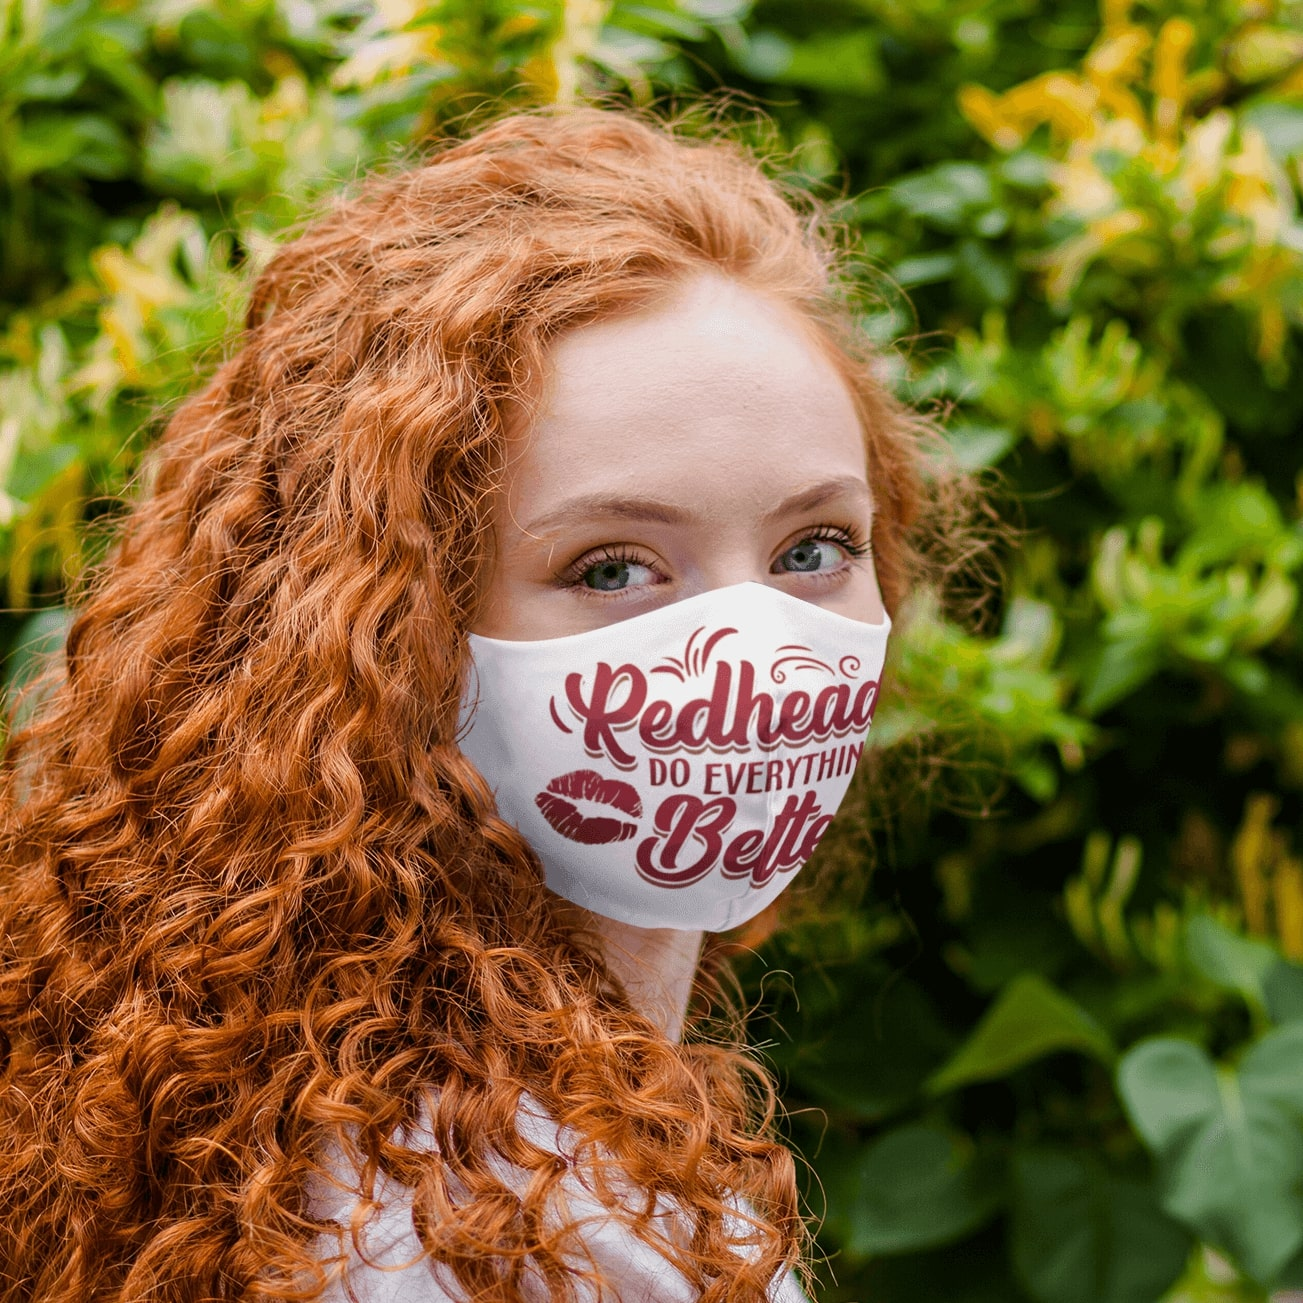 Redheads do everything better sexy lips all over printed face mask 1